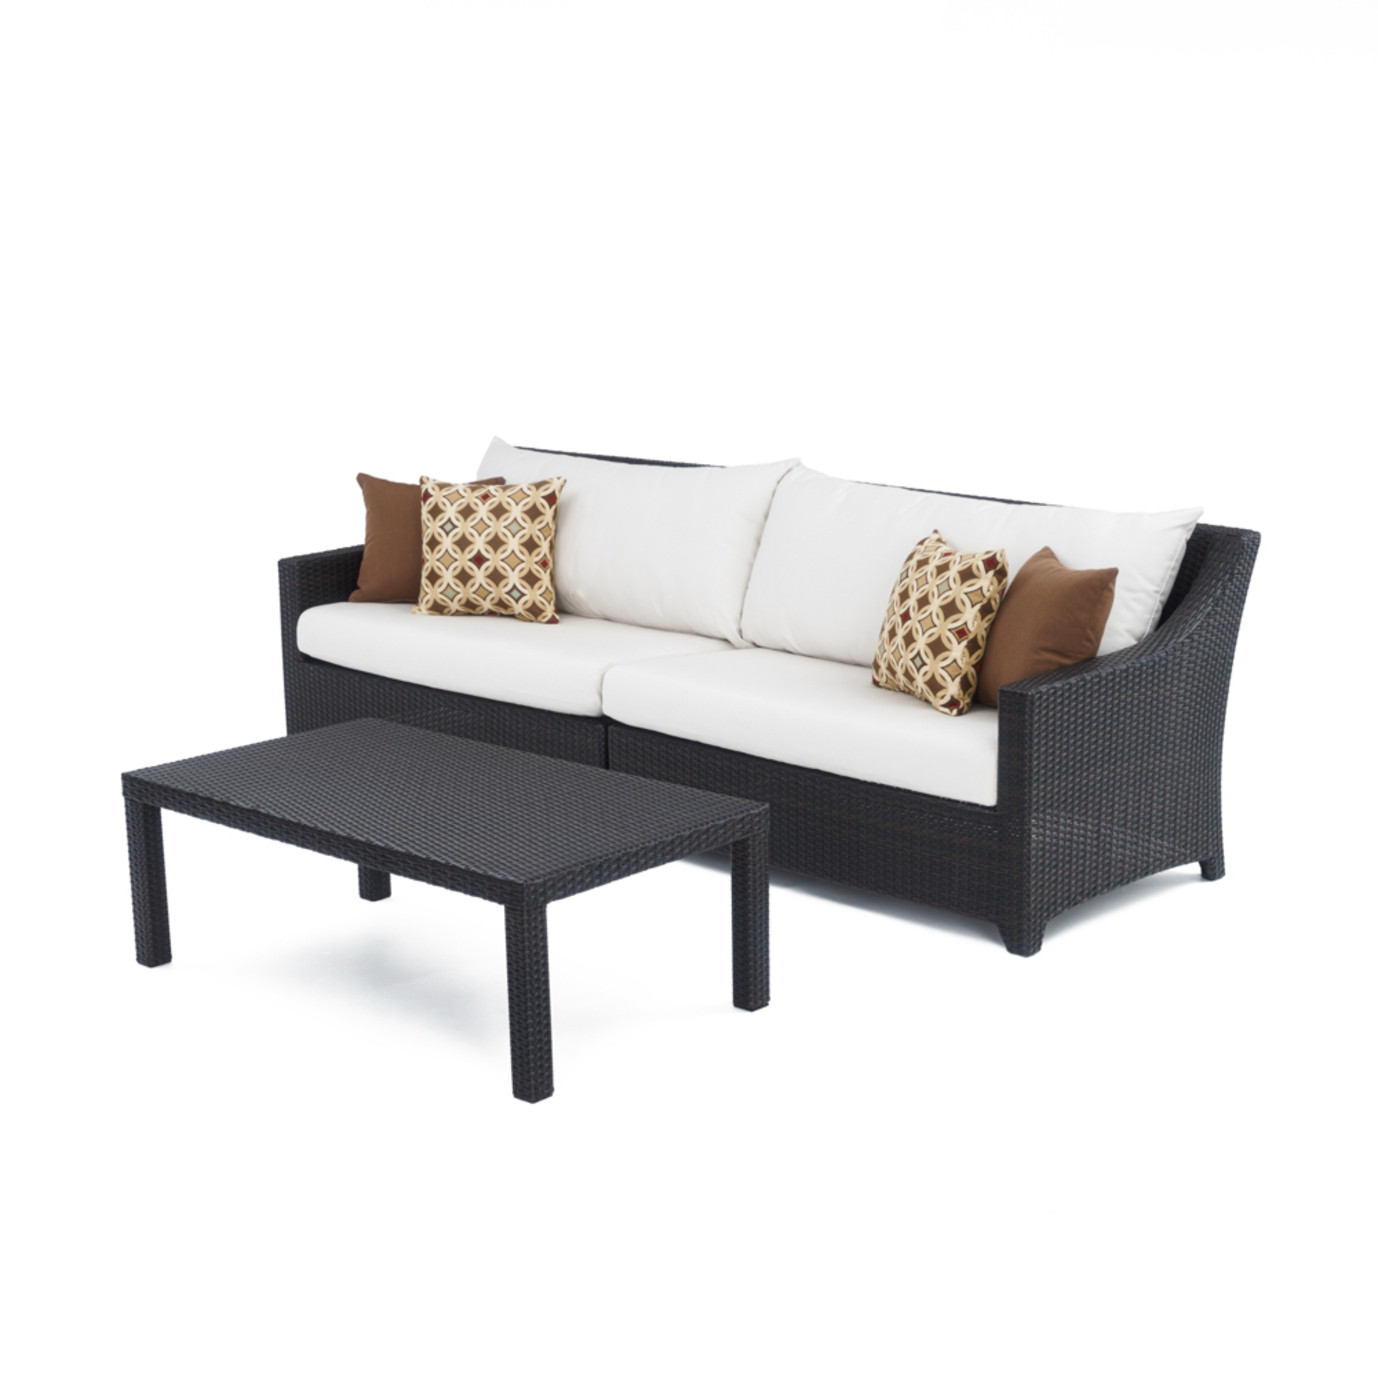 Deco™ Sofa with Coffee Table - Moroccan Cream